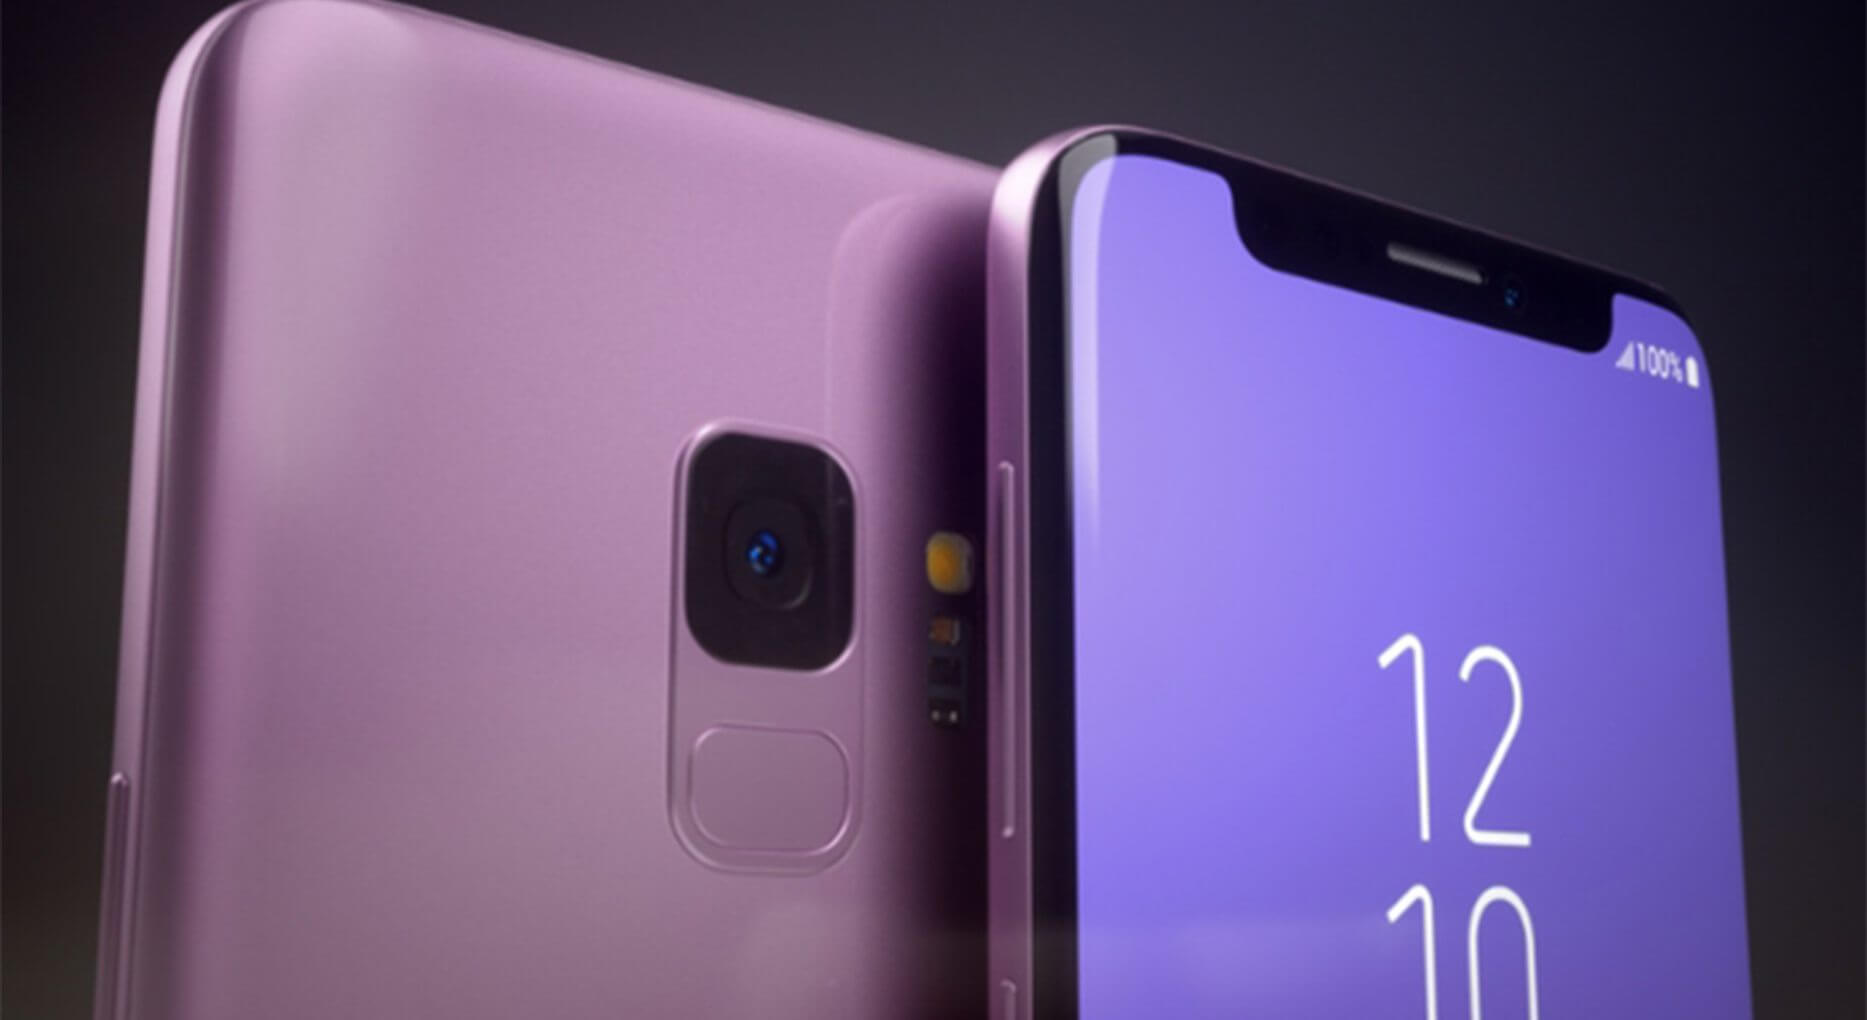 samsung 1 - Assim seria o Galaxy S9 se ele tivesse o notch do iPhone X